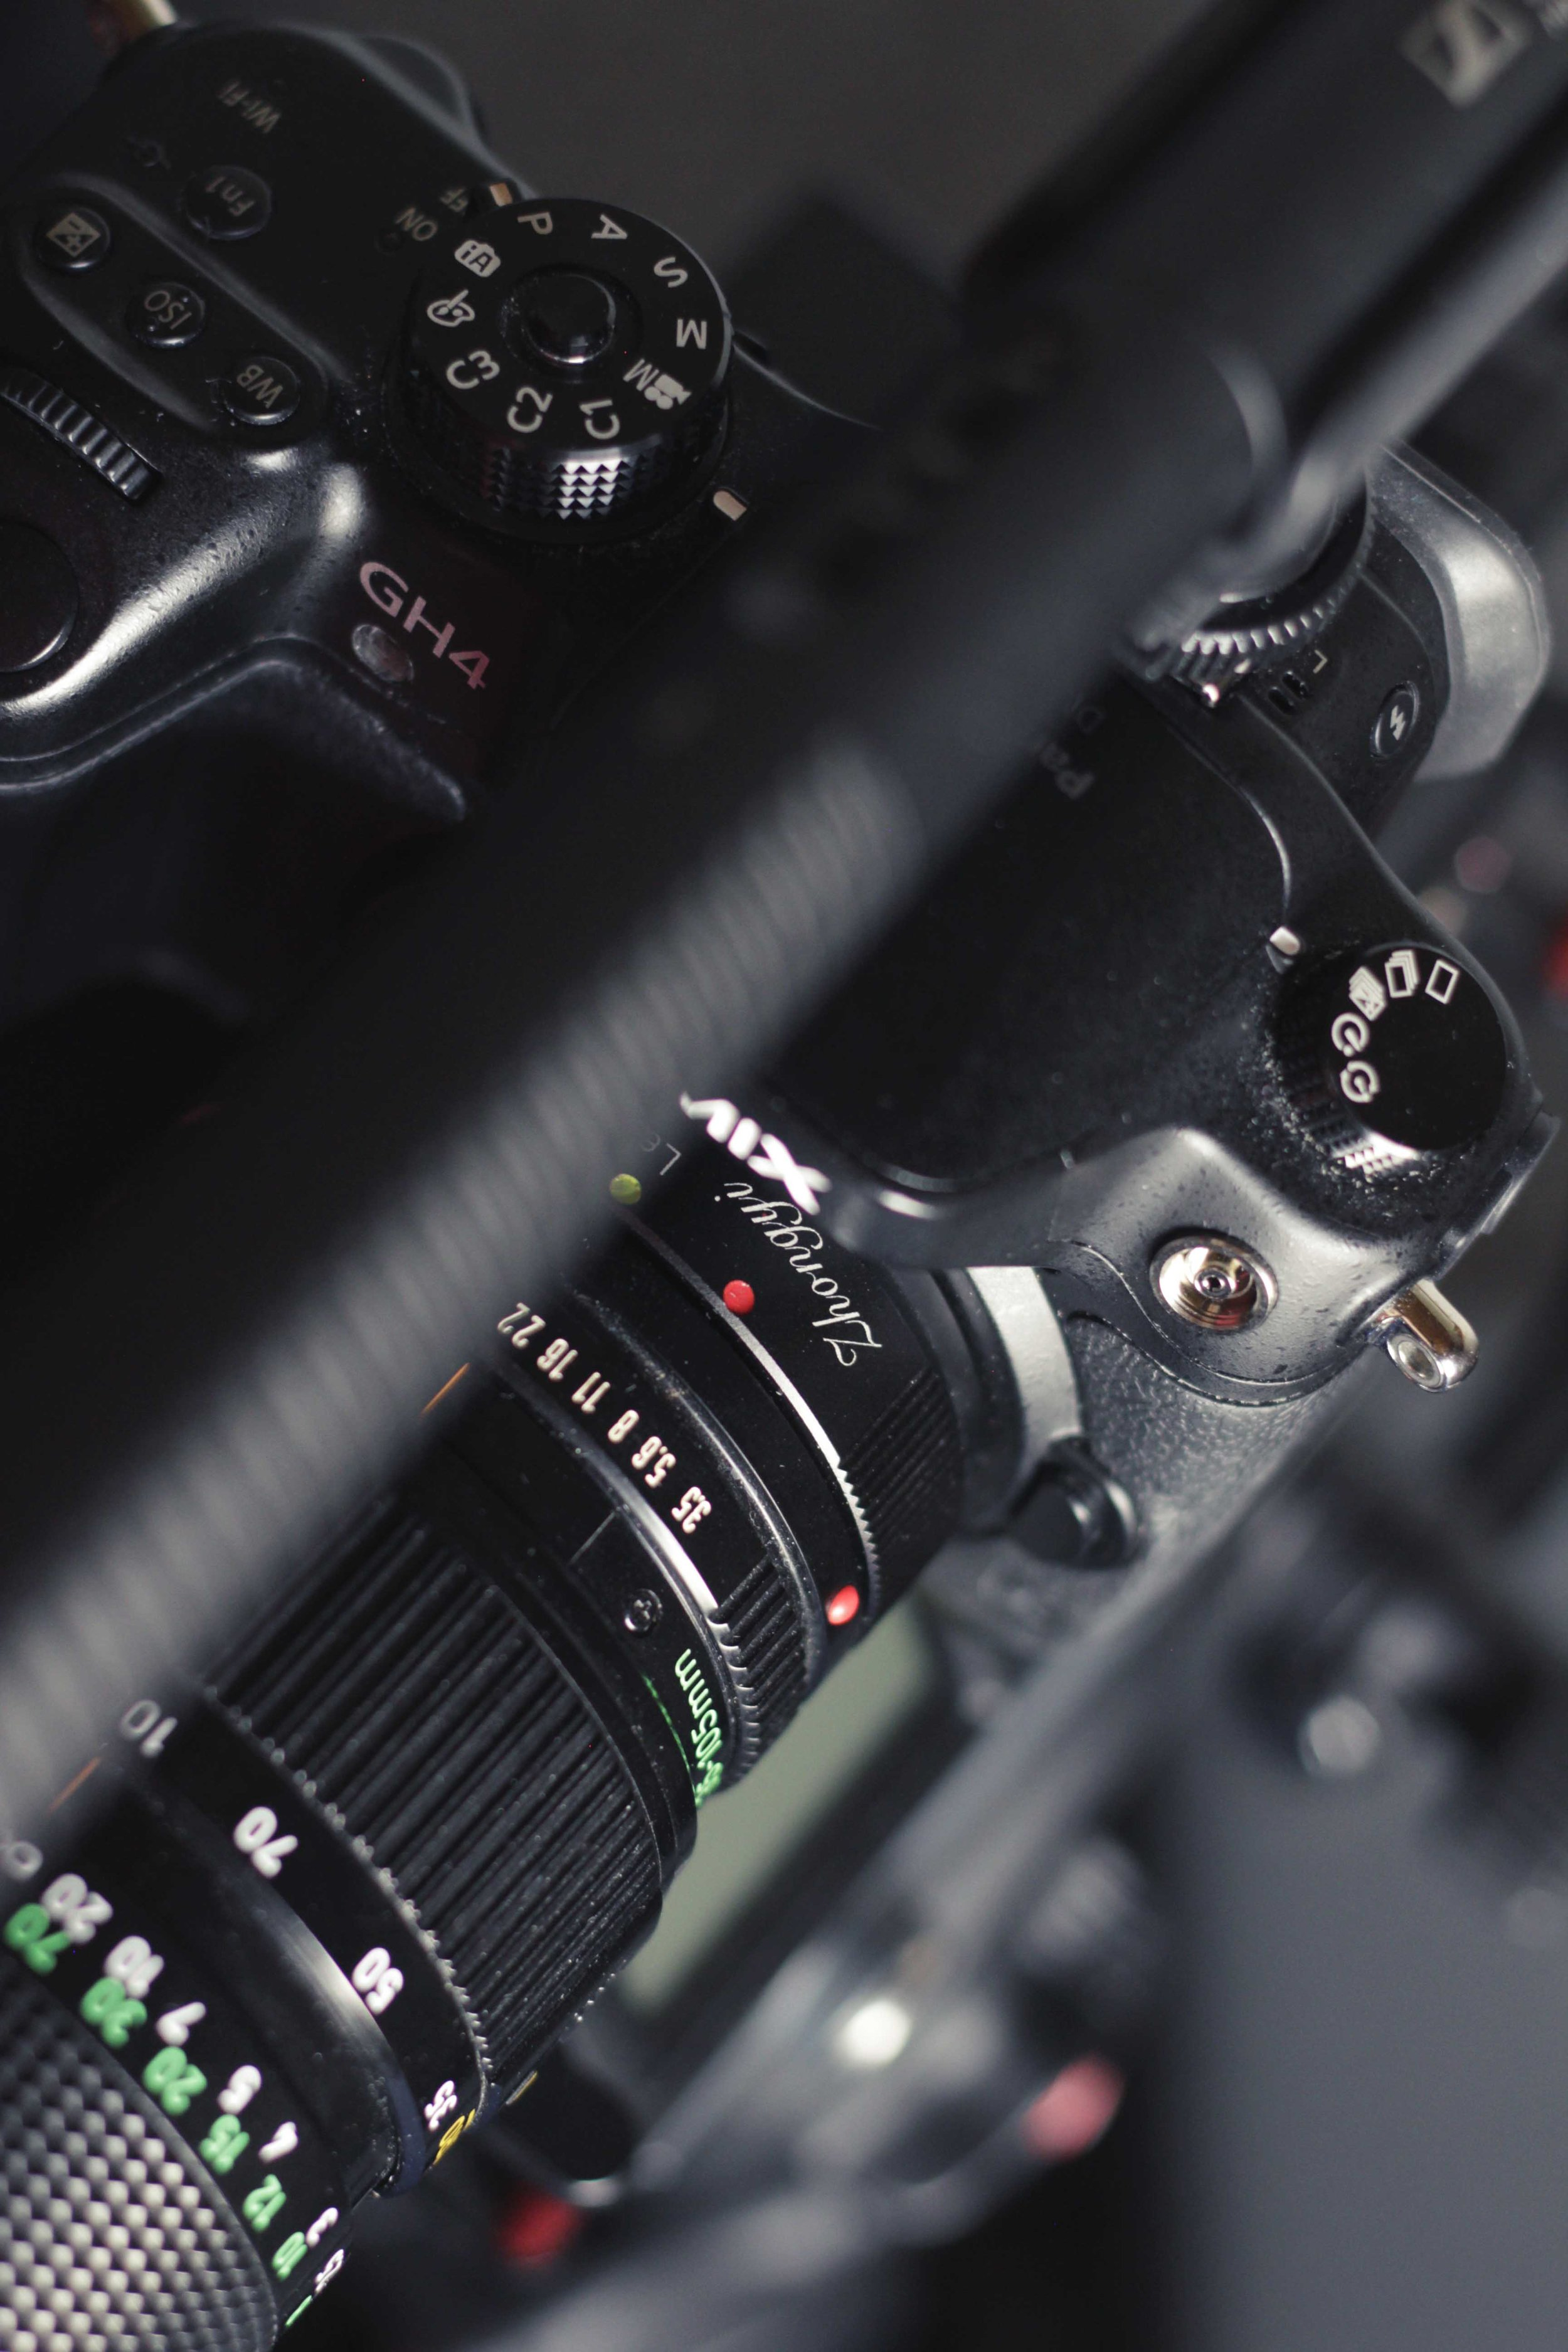 Panasonic GH4 with a Zhongyi LensTurbo II and a vintage Canon FD 35-105mm f/3.5